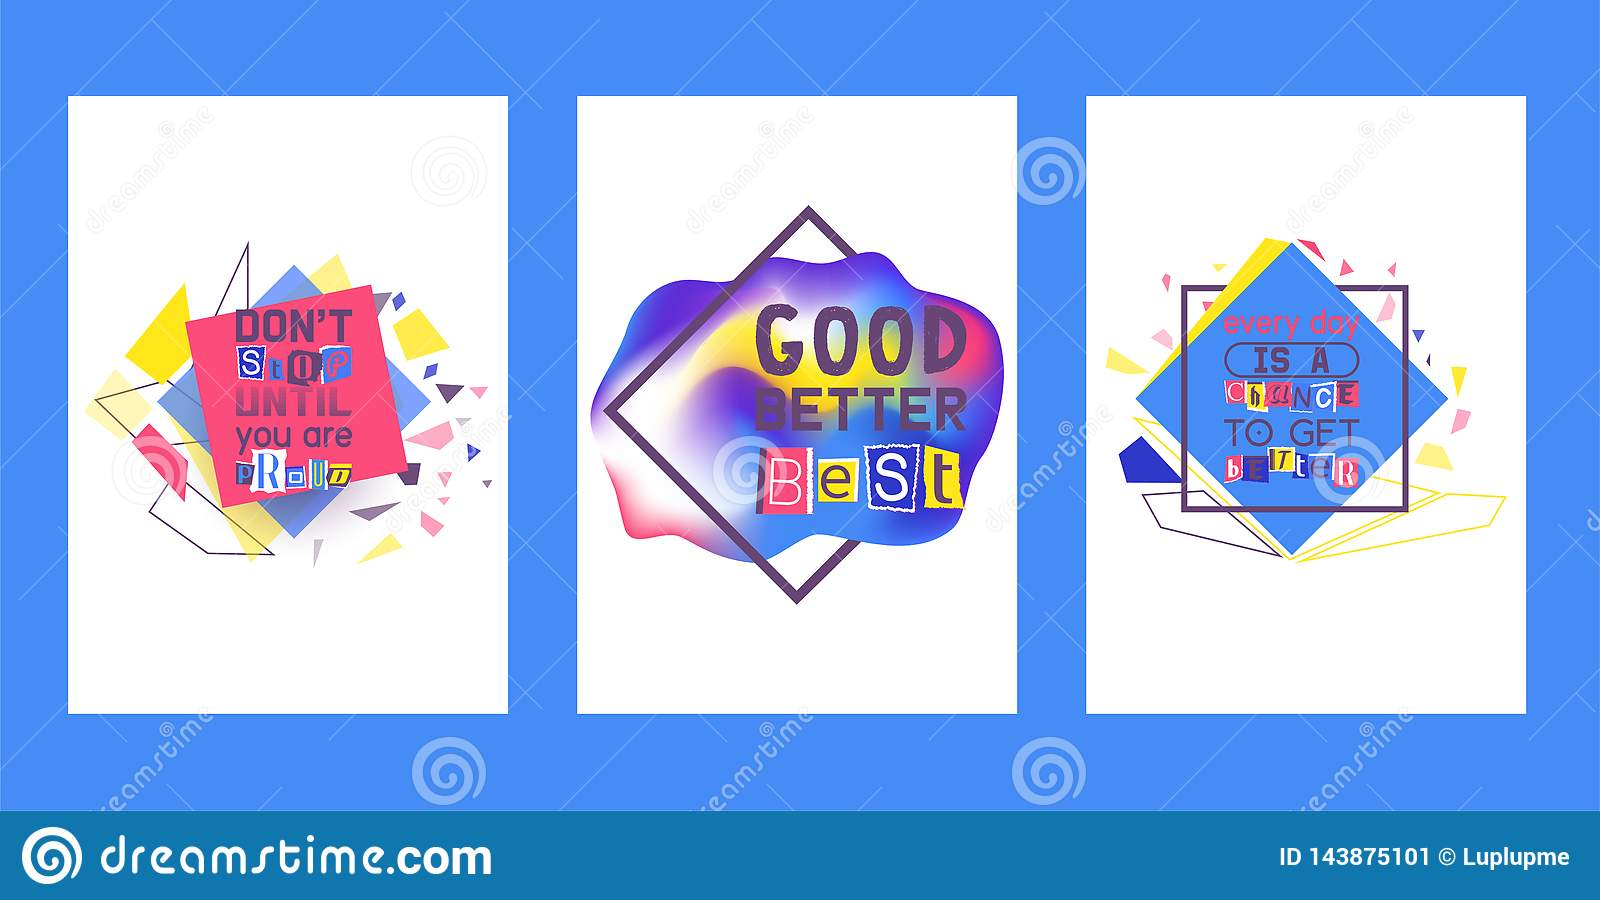 Alphabetical collage set of cards vector illustration. Words cut out by scissors from colorful paper. Dont stop until